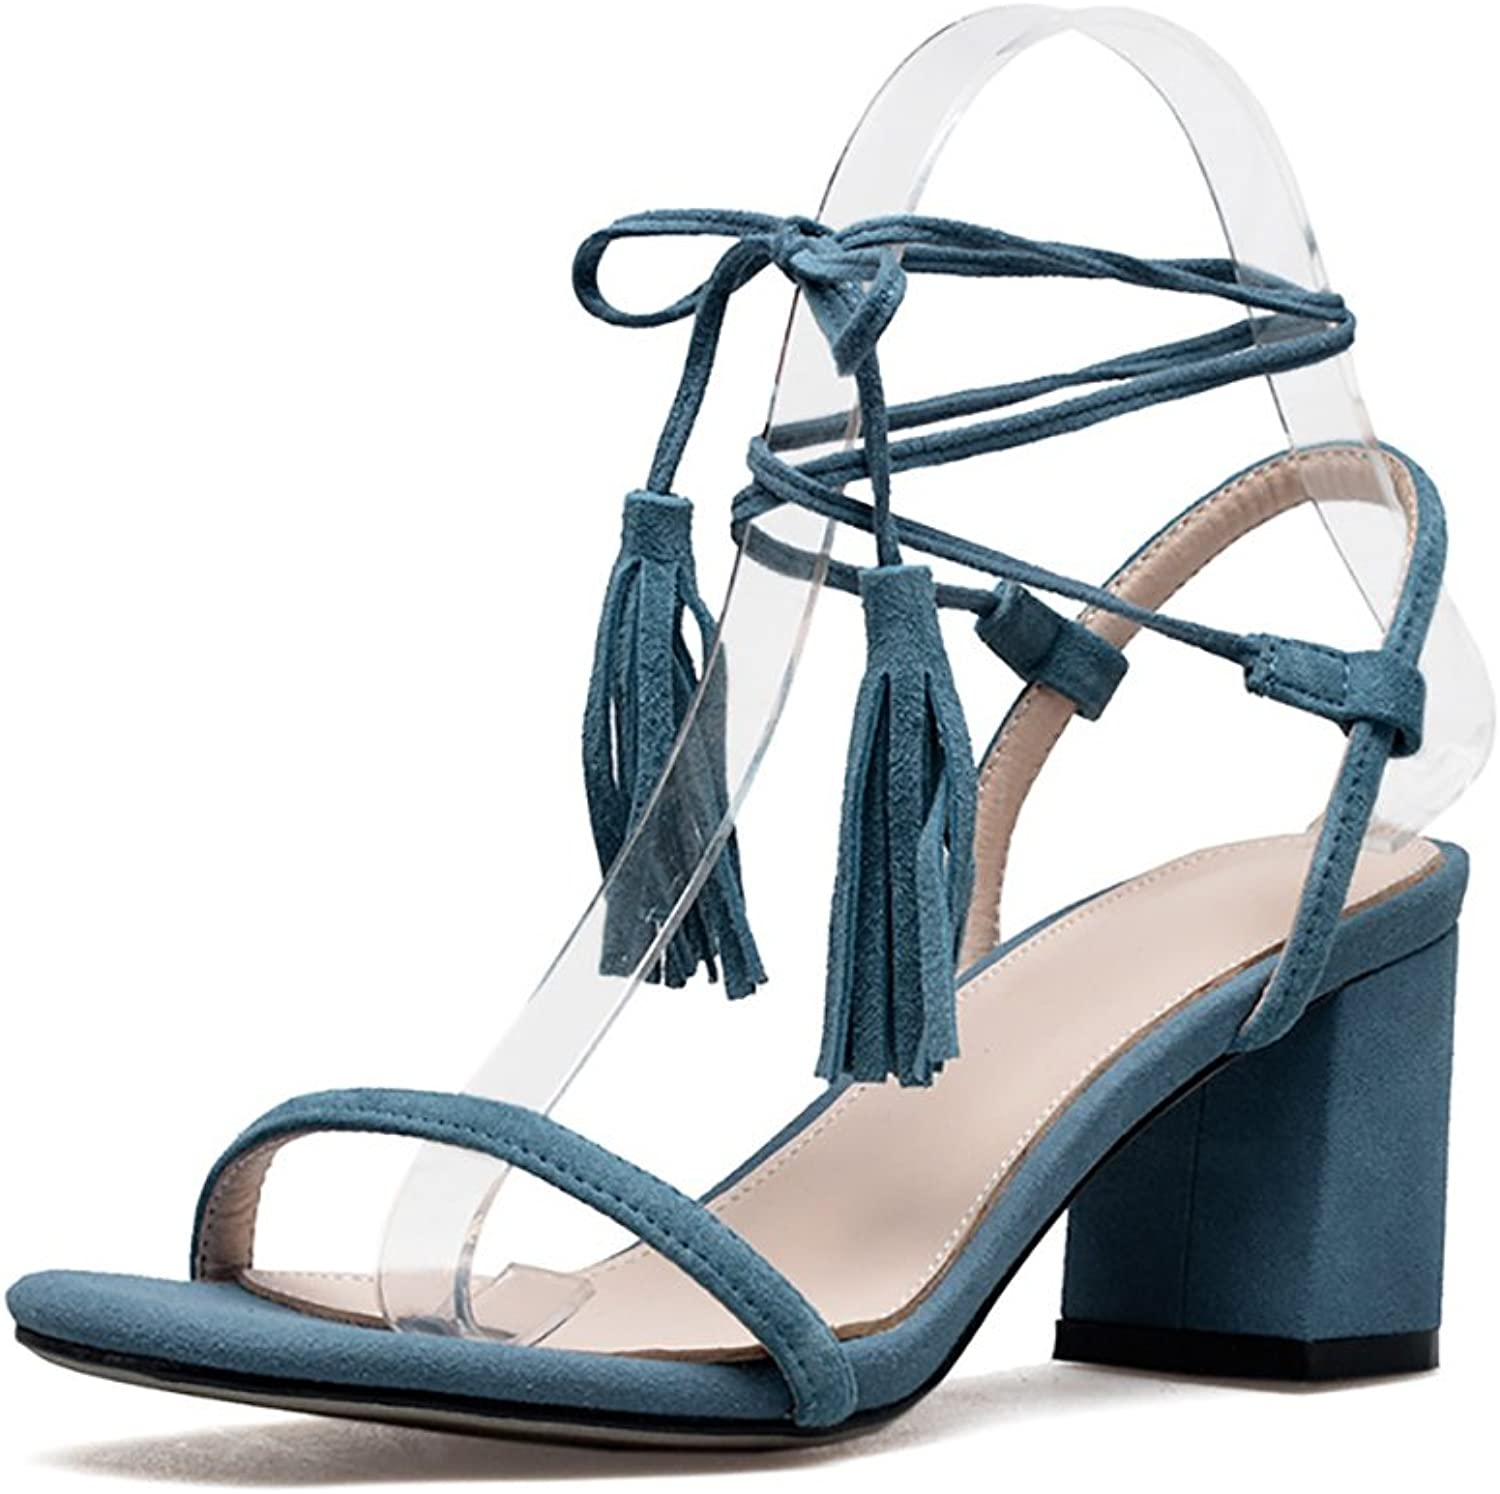 Fashion Roman Lace-up Sandals Women's Summer Leather High Heels ( color   bluee , Size   38 )